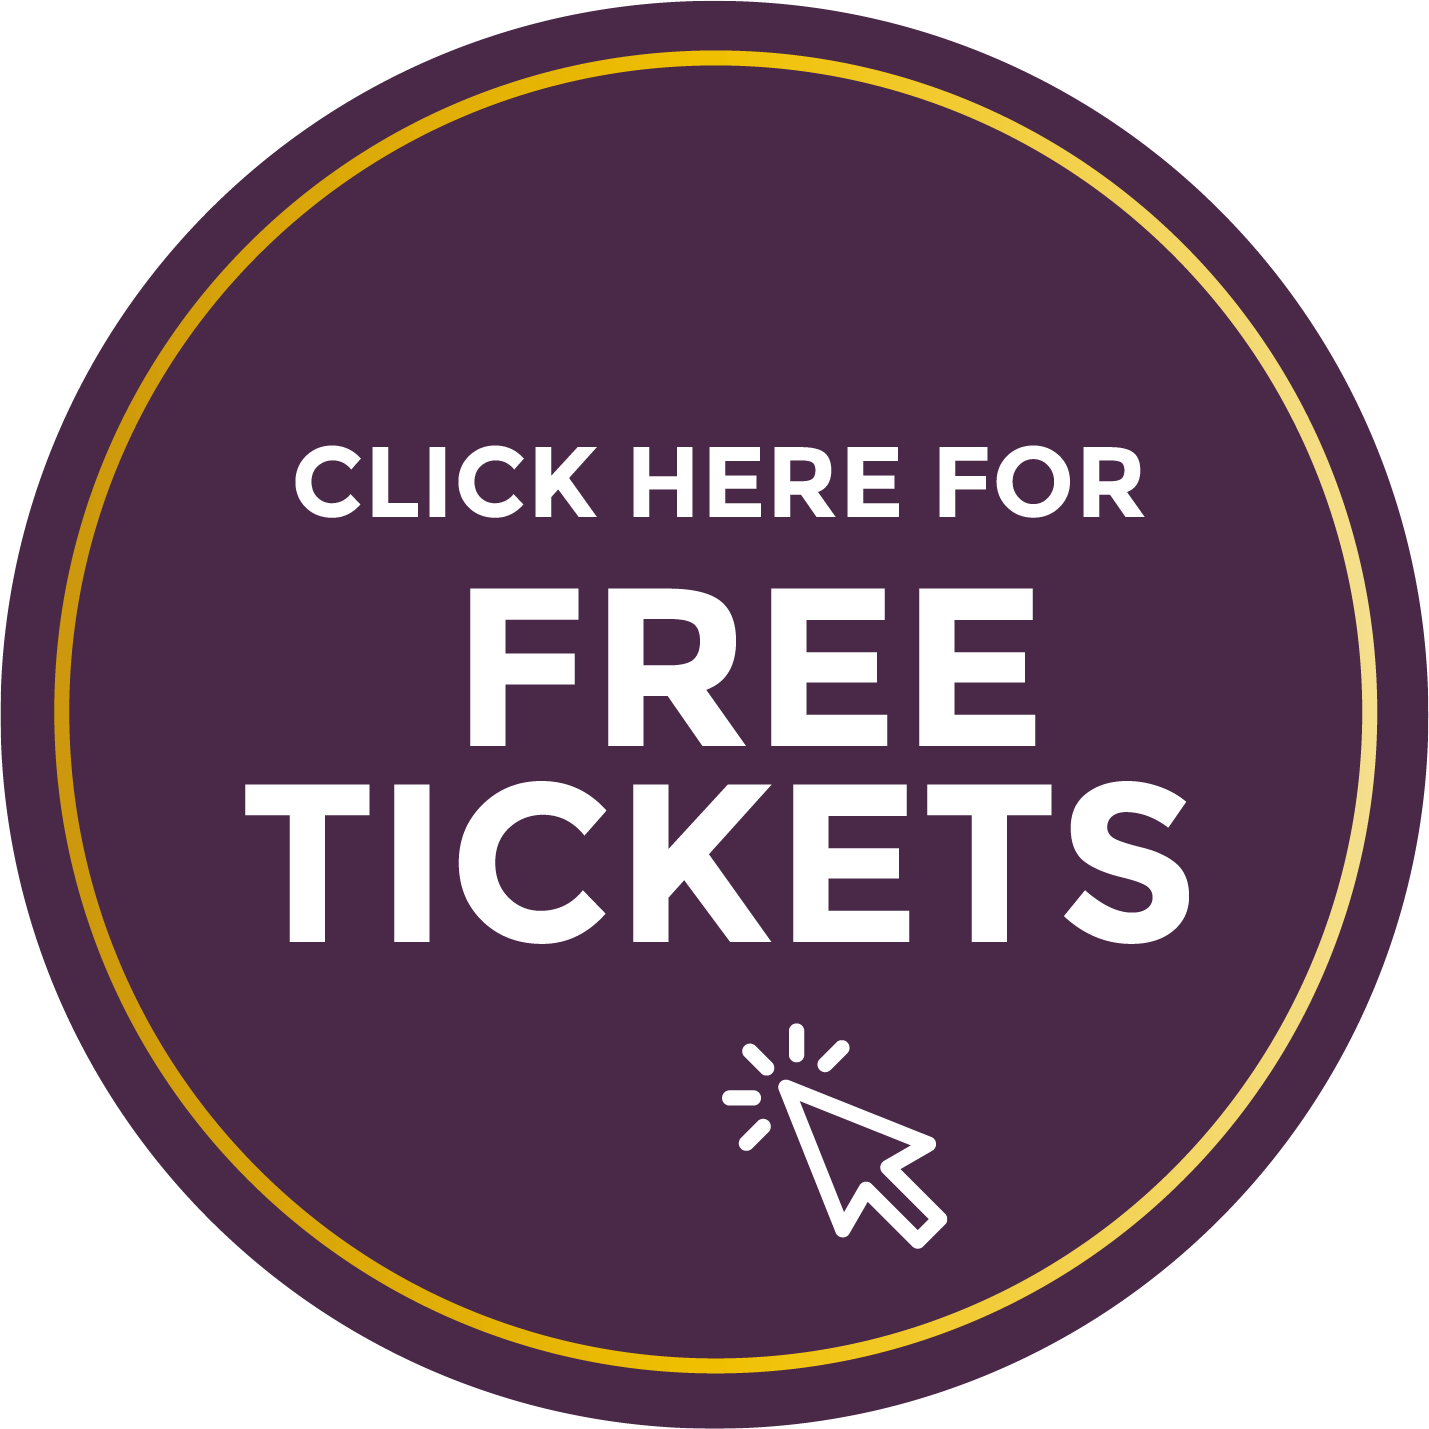 Order Free Tickets